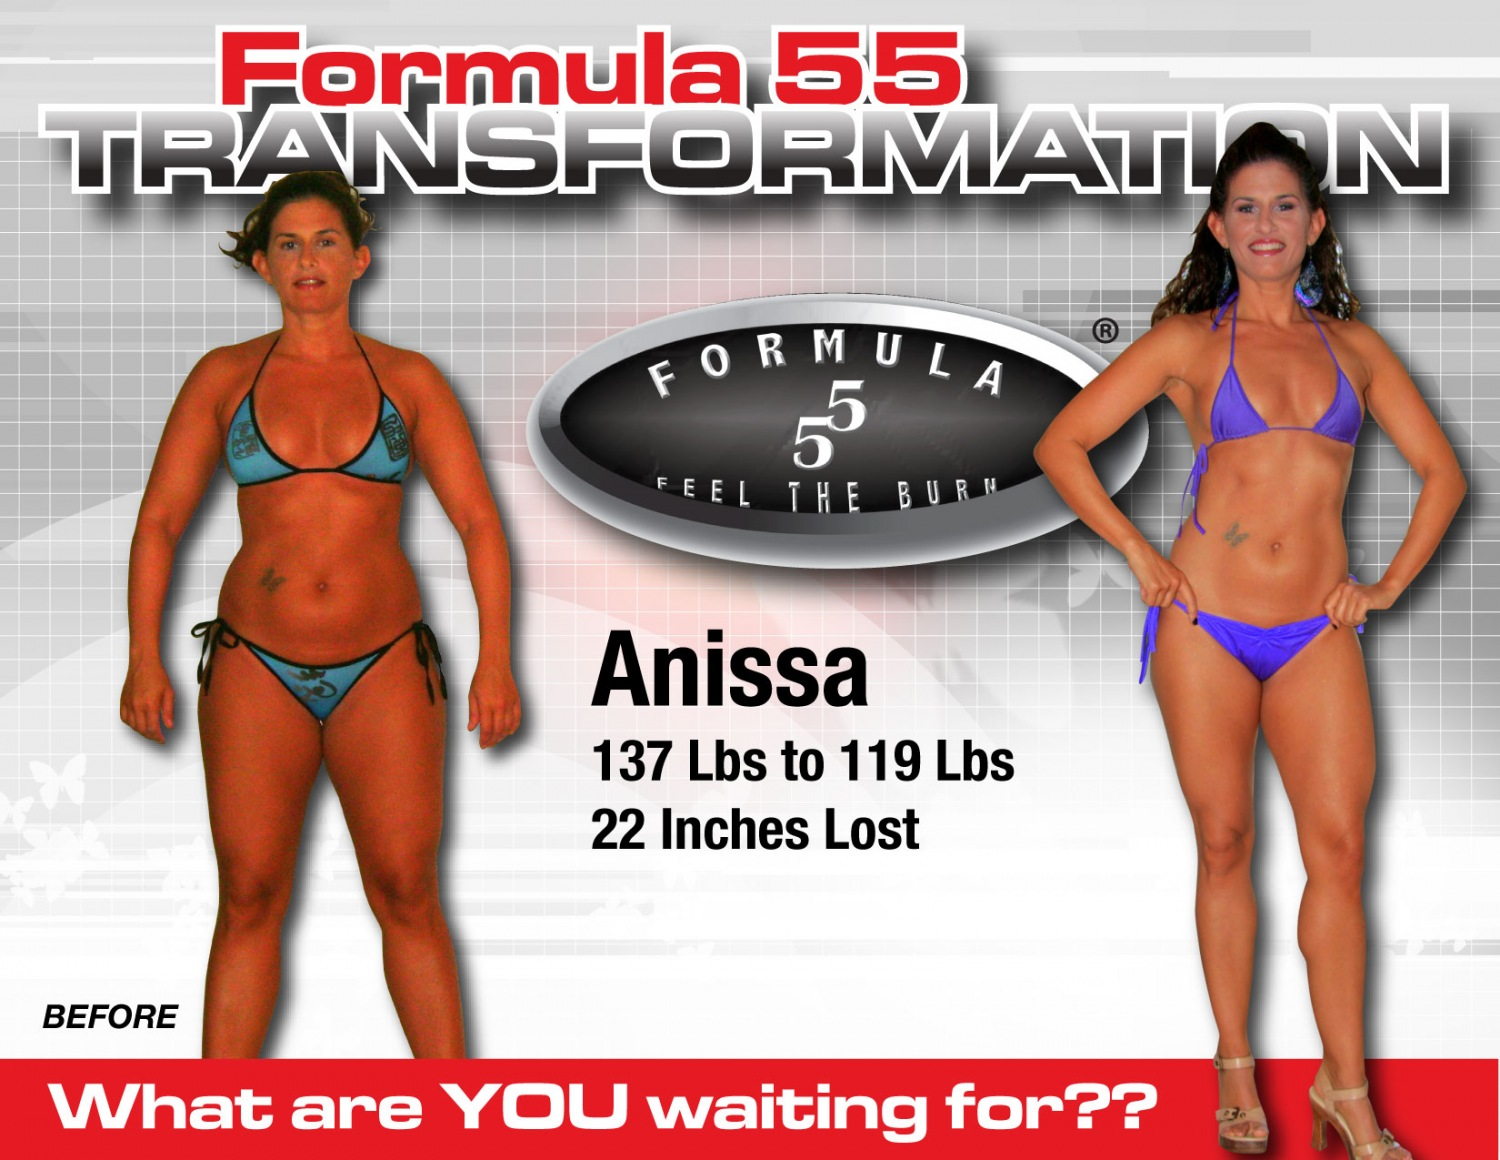 form-55-Transformation-Anissa.jpg